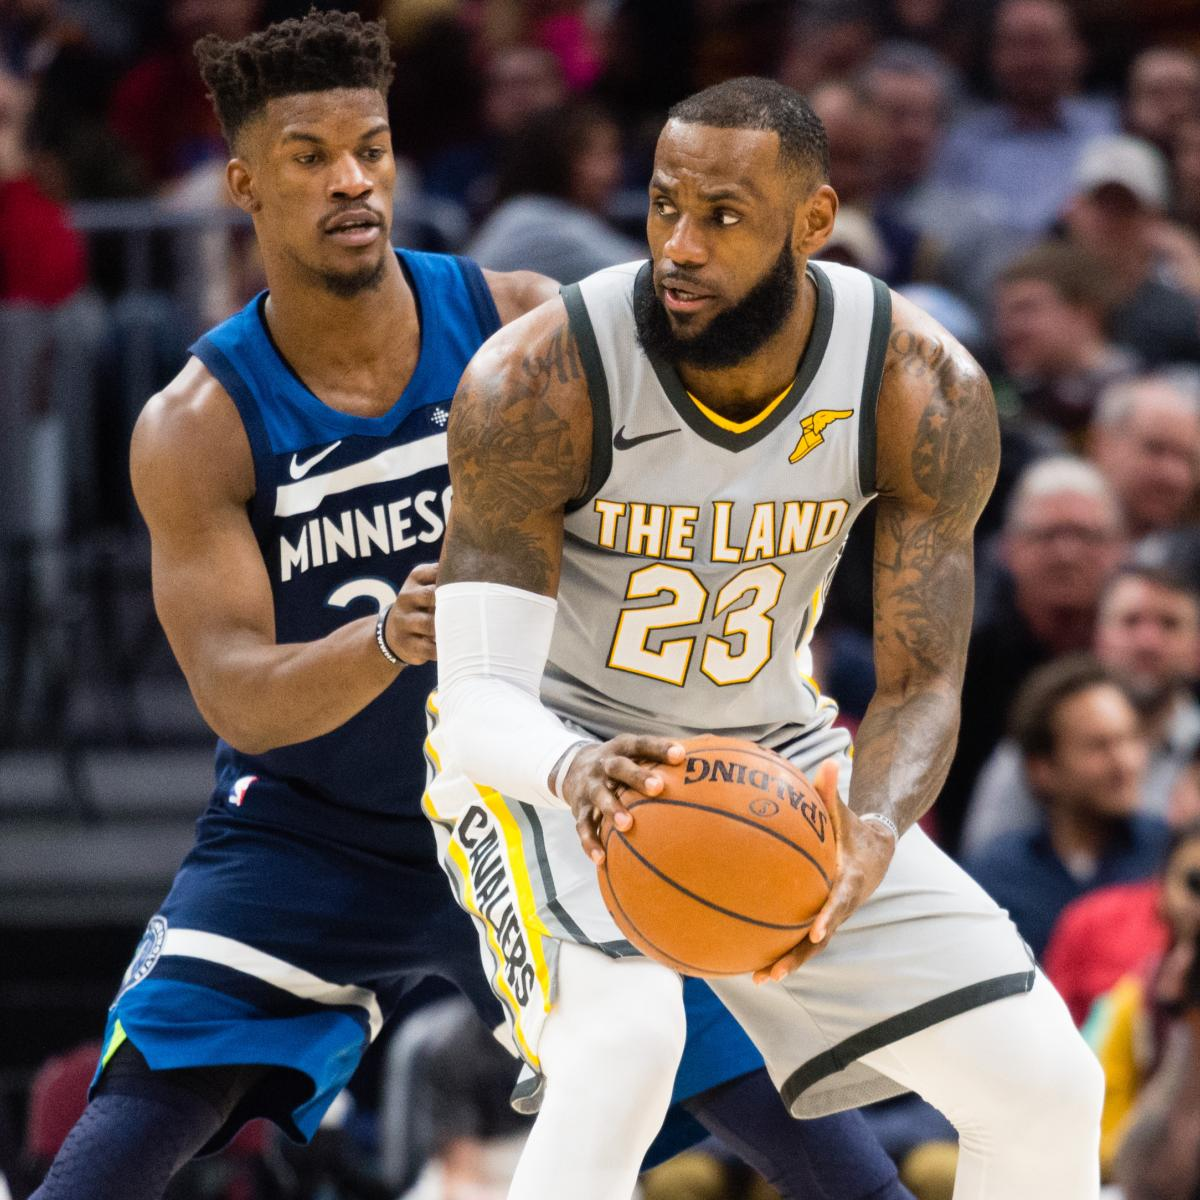 Mlb Rumors Analyzing All The Latest Whispers News And: Lakers Rumors: Latest Buzz On Top 2019 Free Agents And